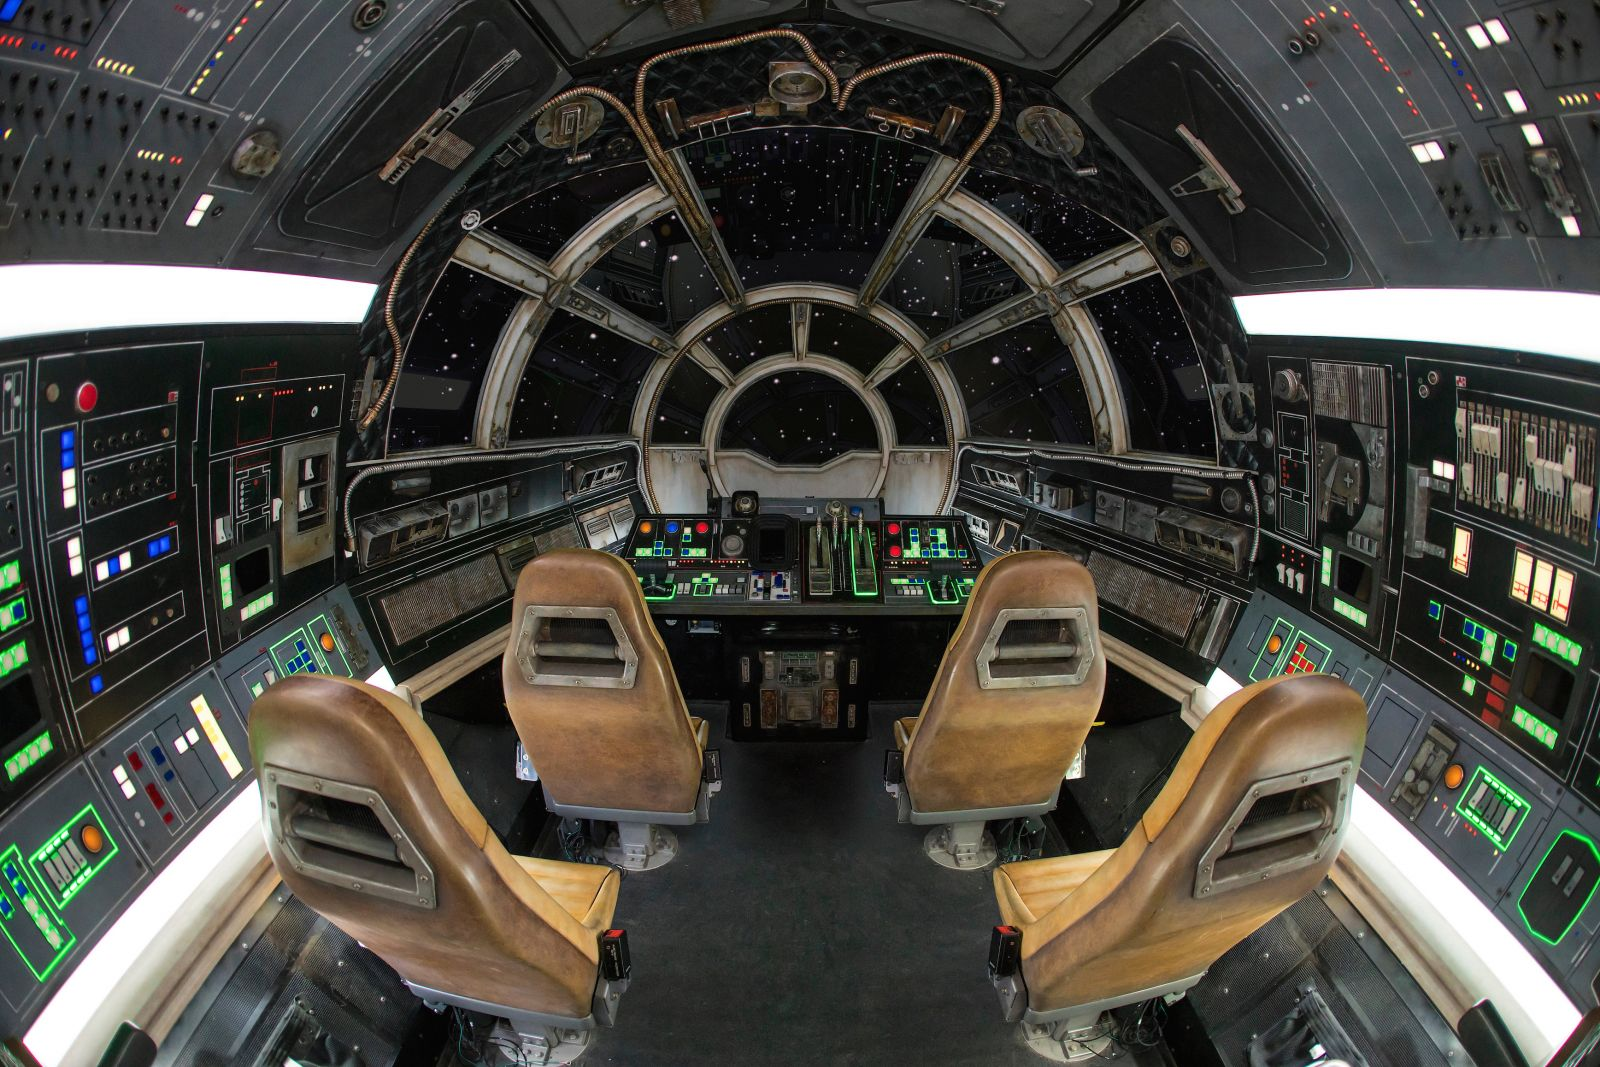 Star-Wars-Galaxys-Edge-Millennium-Falcon-cockpit